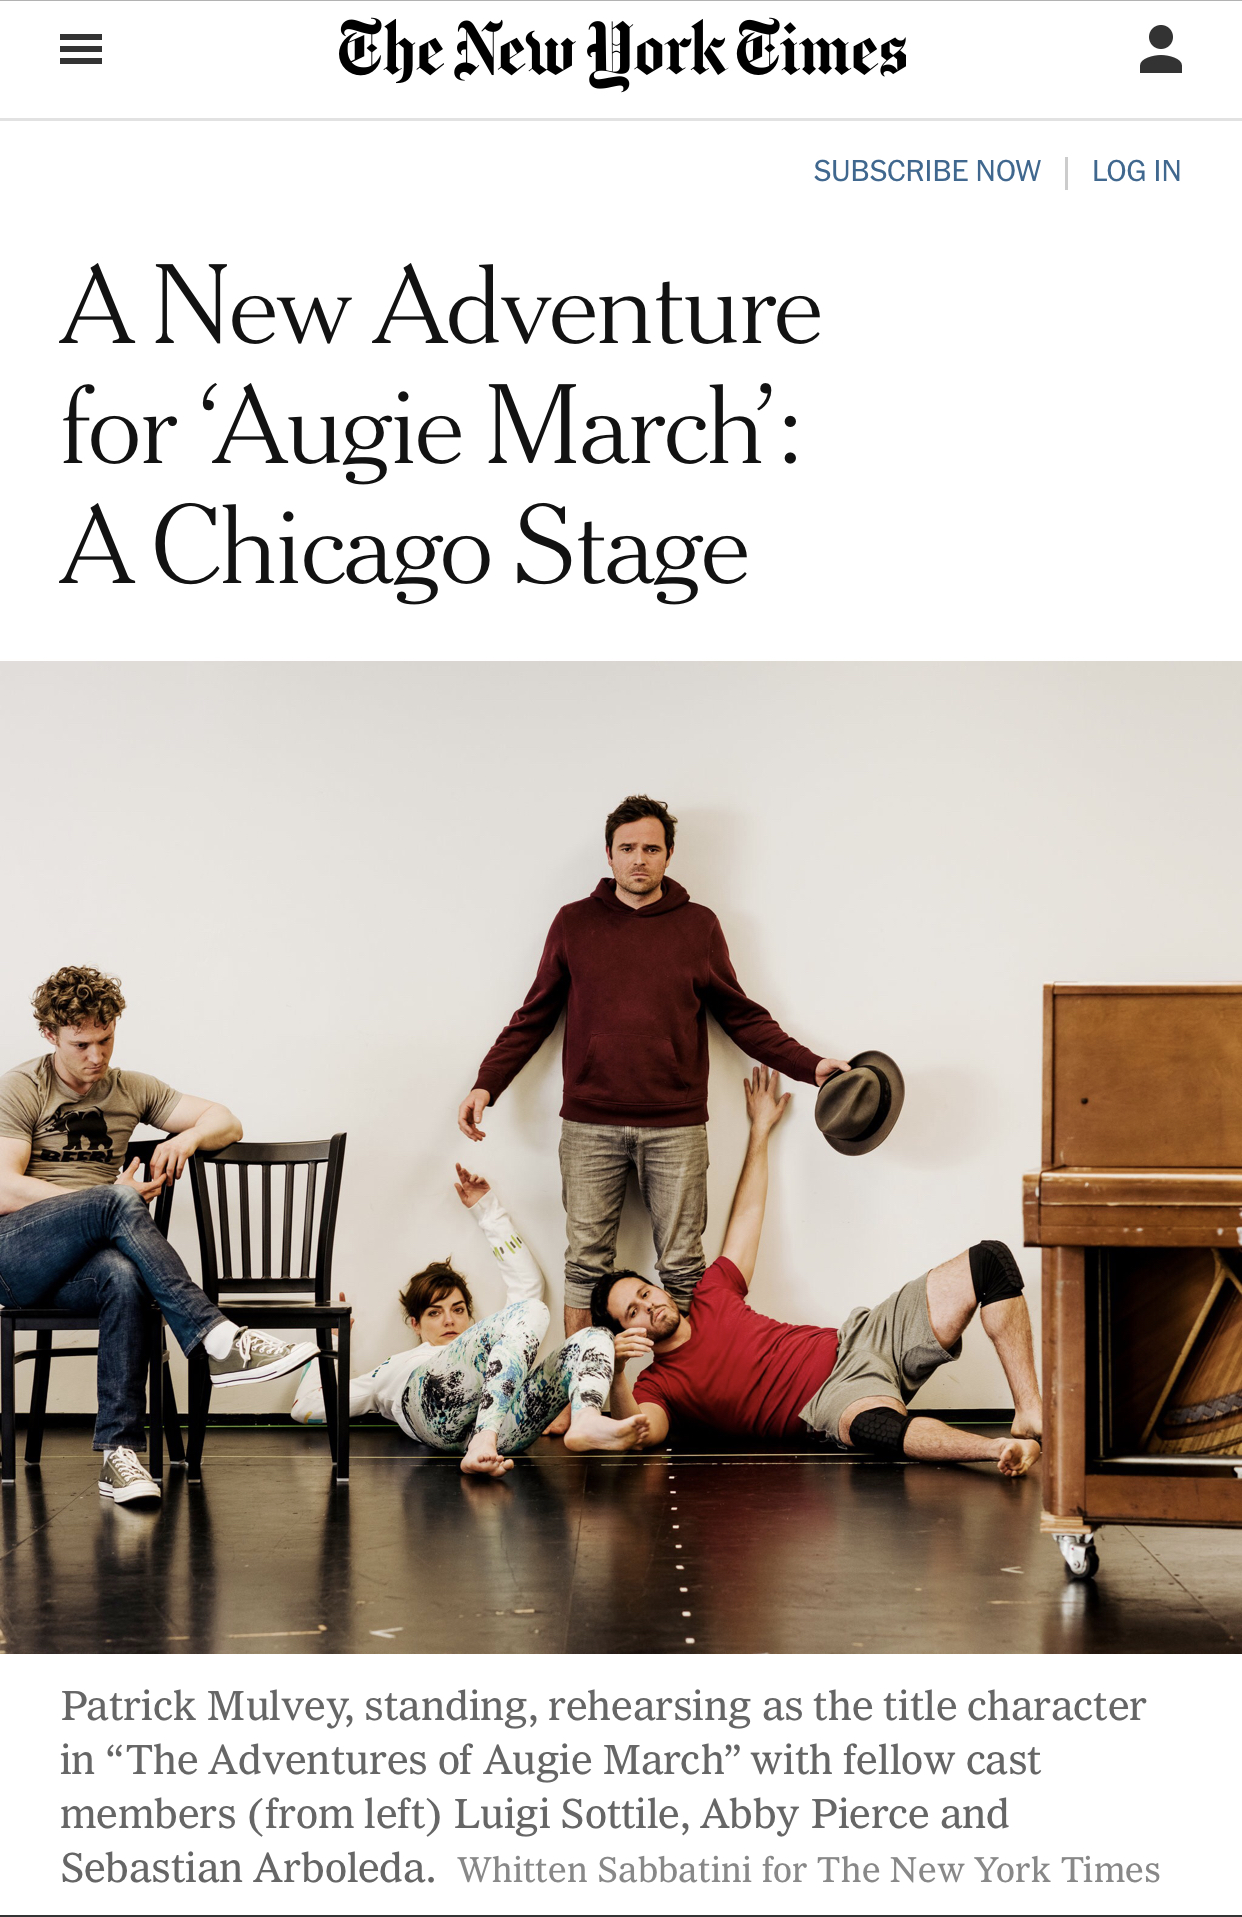 "- Acting in the World Premiere of ""The Adventures of Augie March"" adapted by Pulitzer Prize winning author David Auburn from the Nobel Prize Winning book by Saul Bellow."